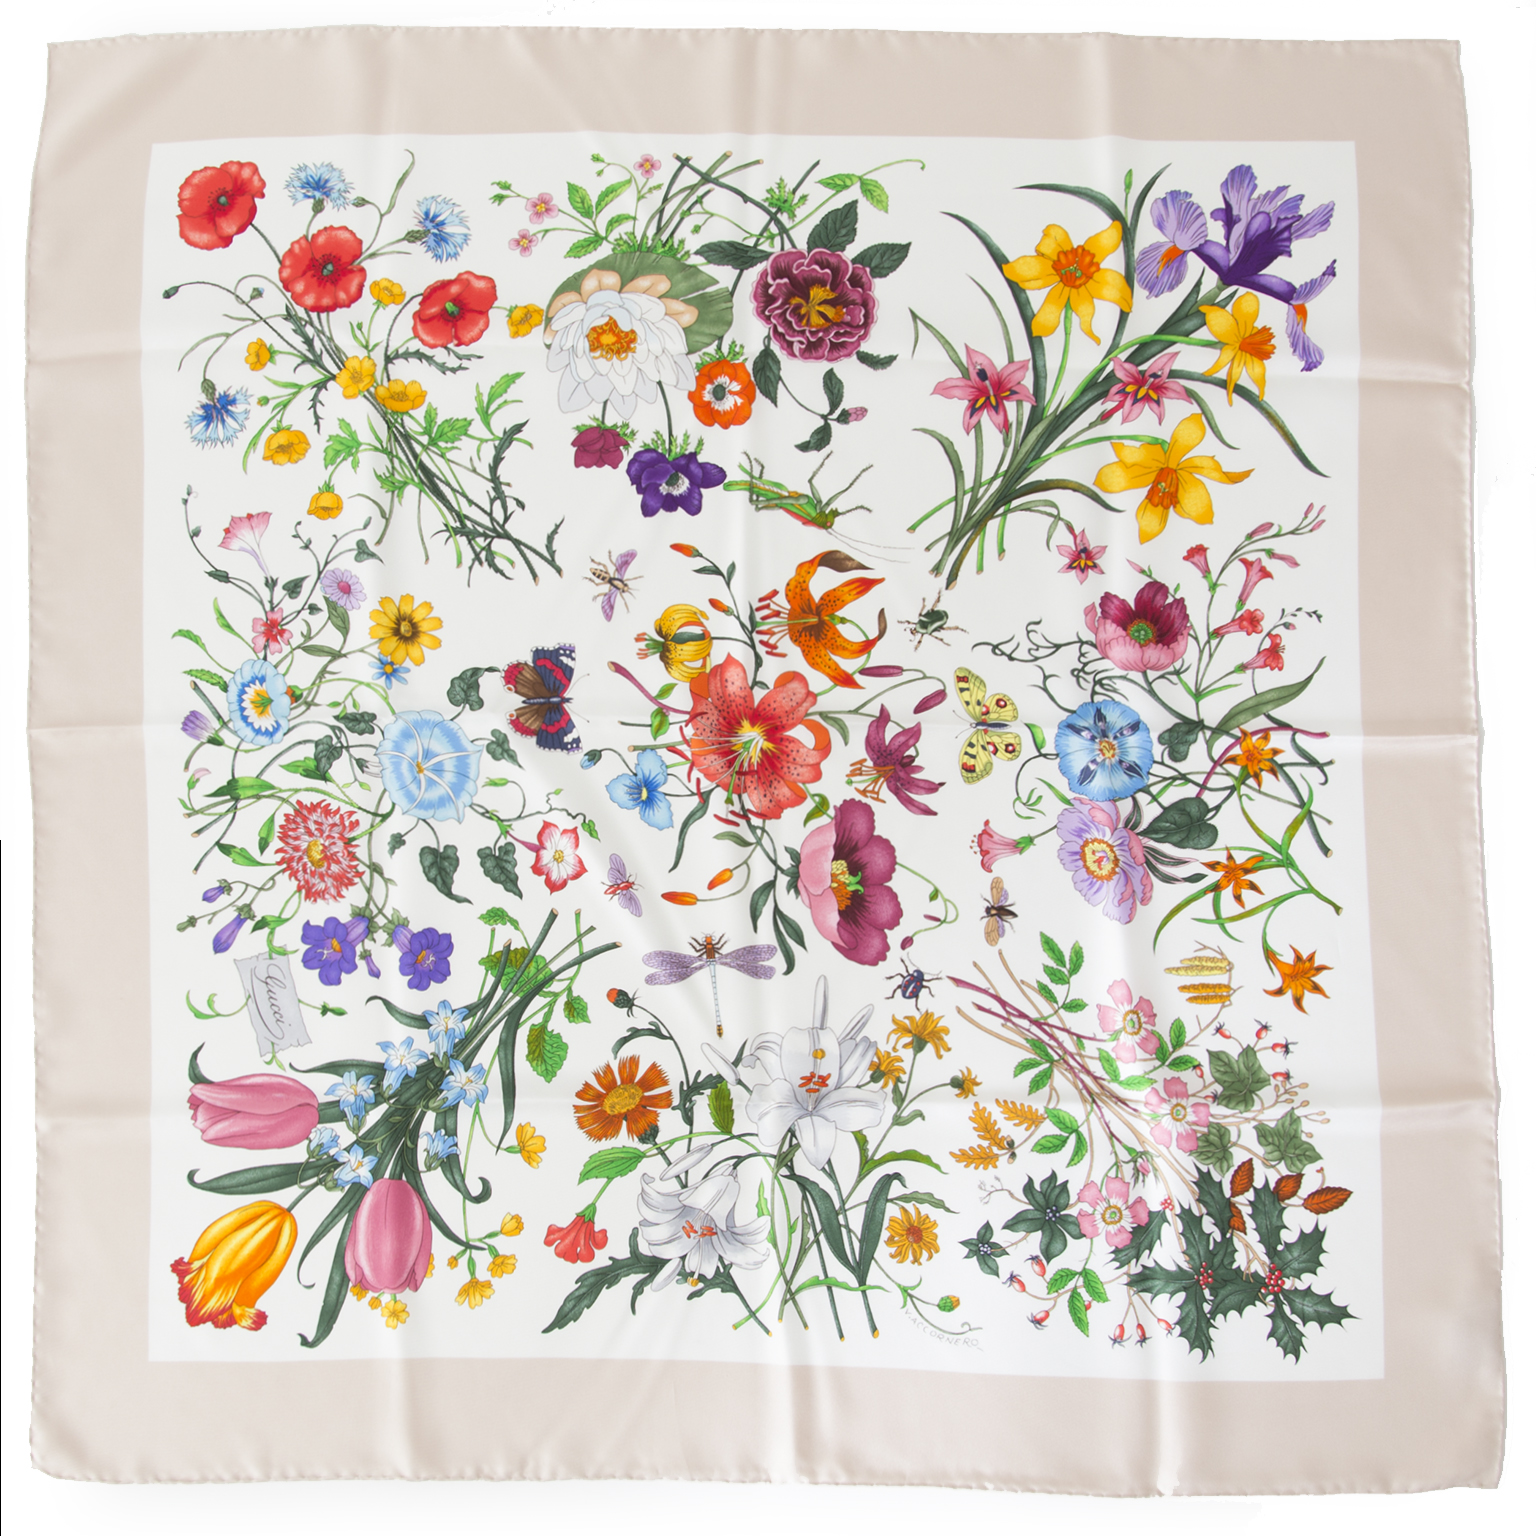 Buy authentic Gucci scarf at the right price at LabelLOV vintage webshop.